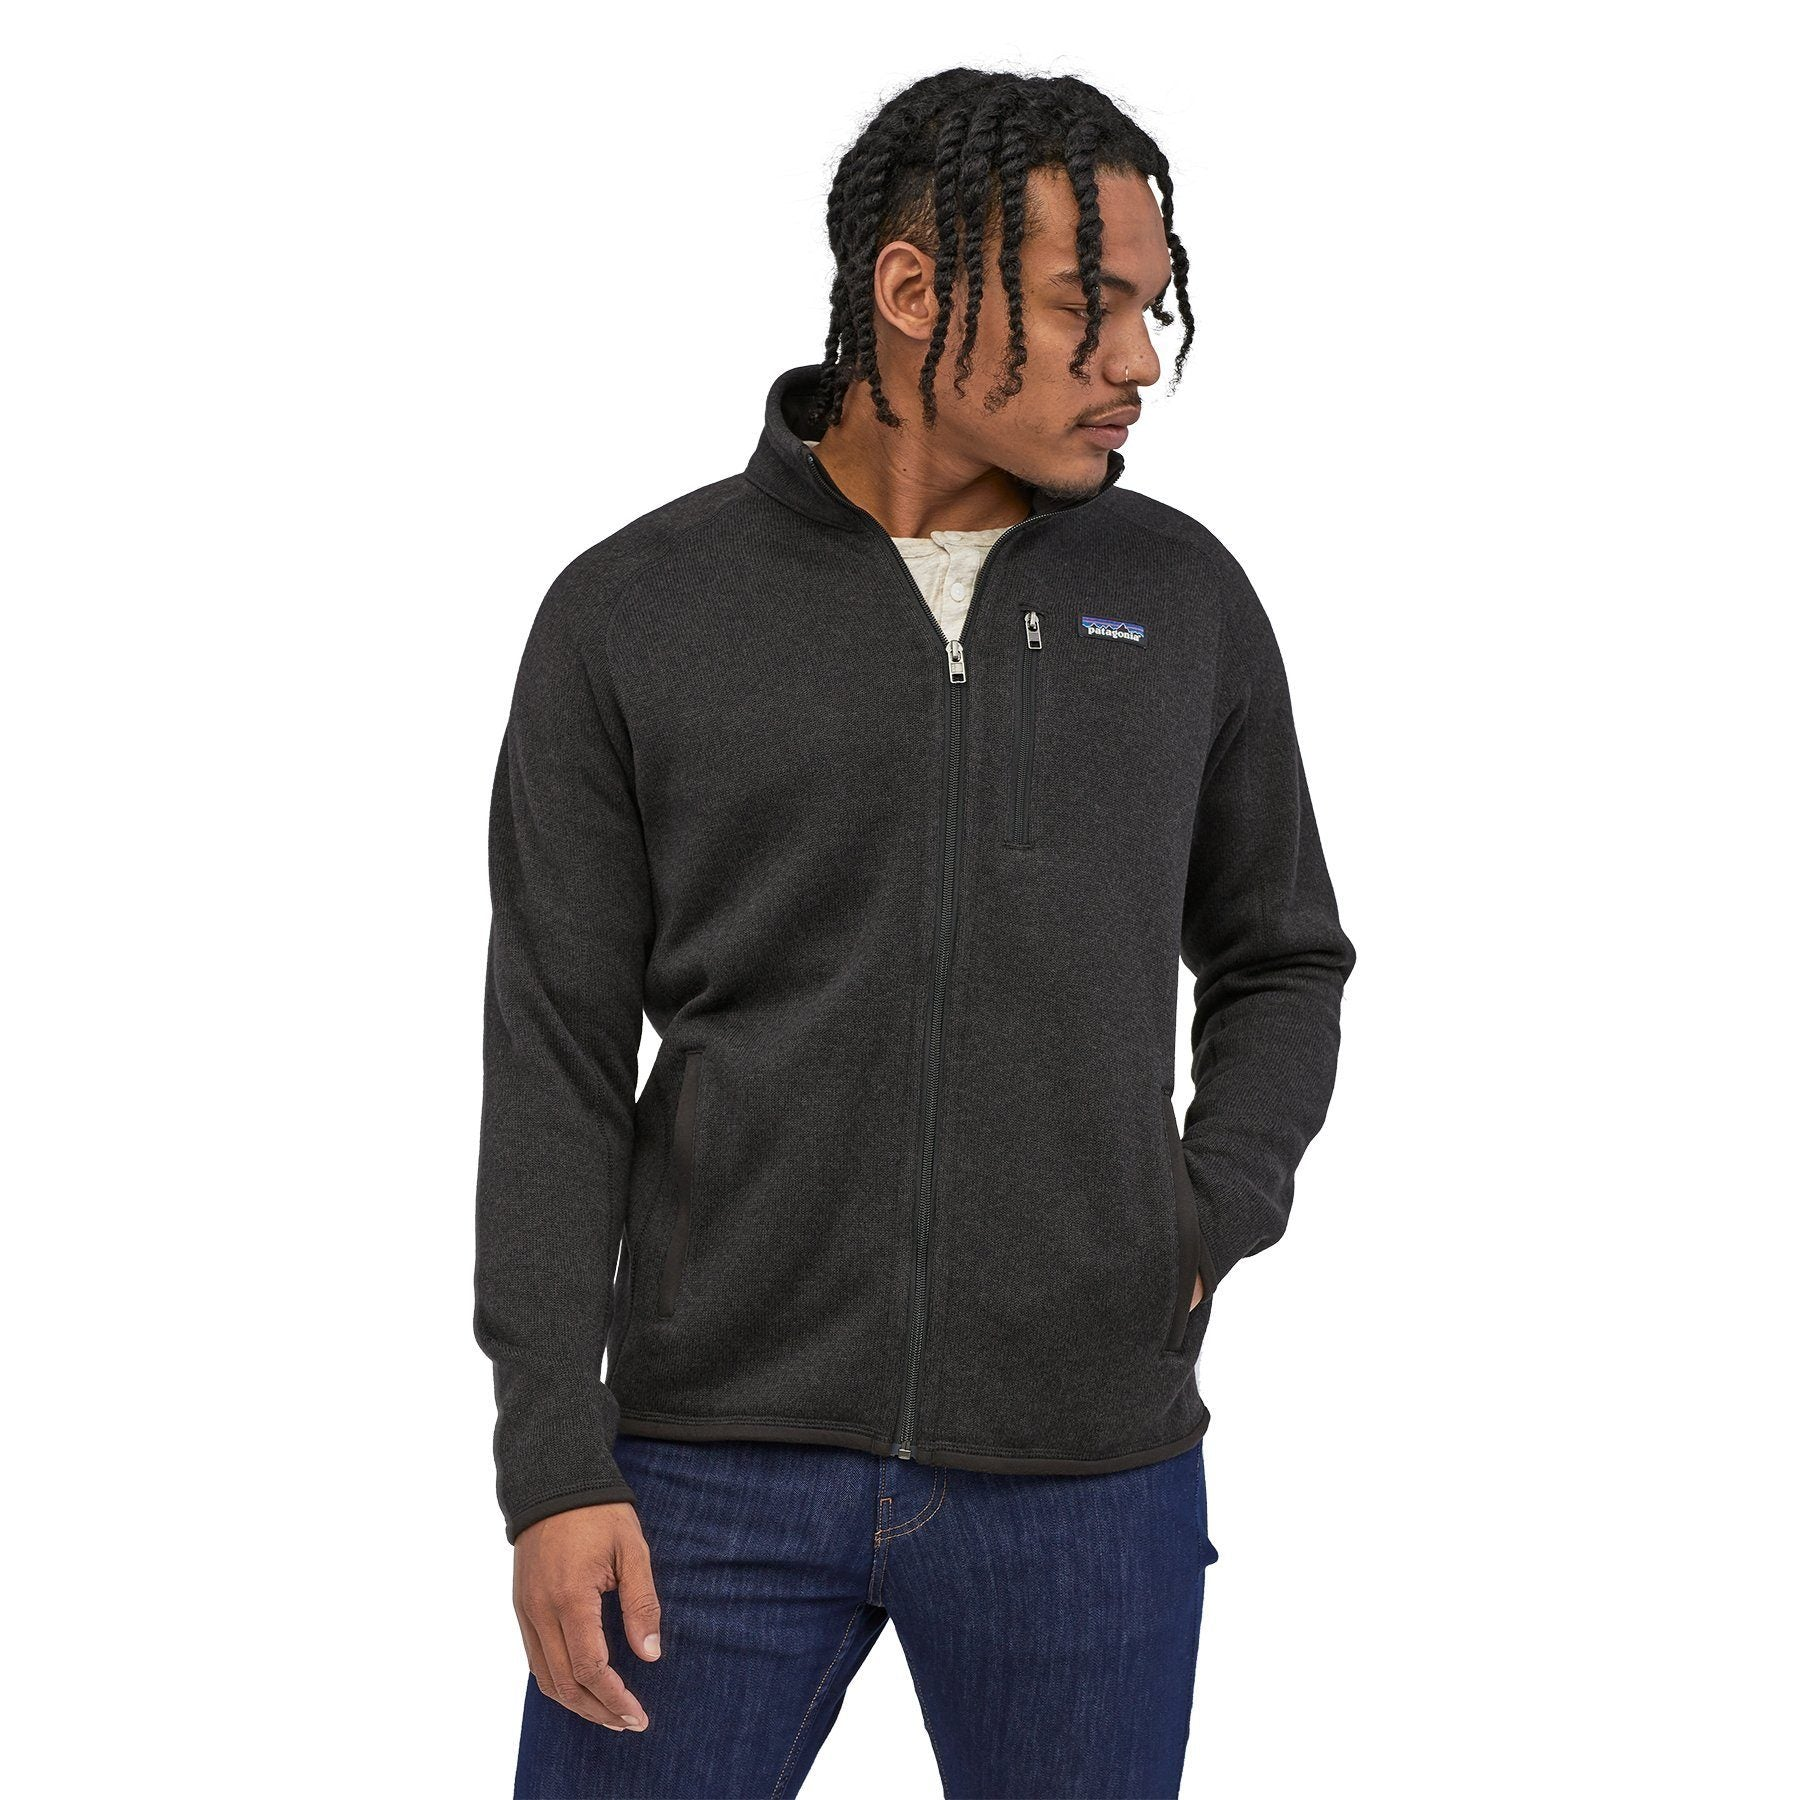 Patagonia - M's Better Sweater® Fleece Jacket  - 100 % recycled polyester - Weekendbee - sustainable sportswear